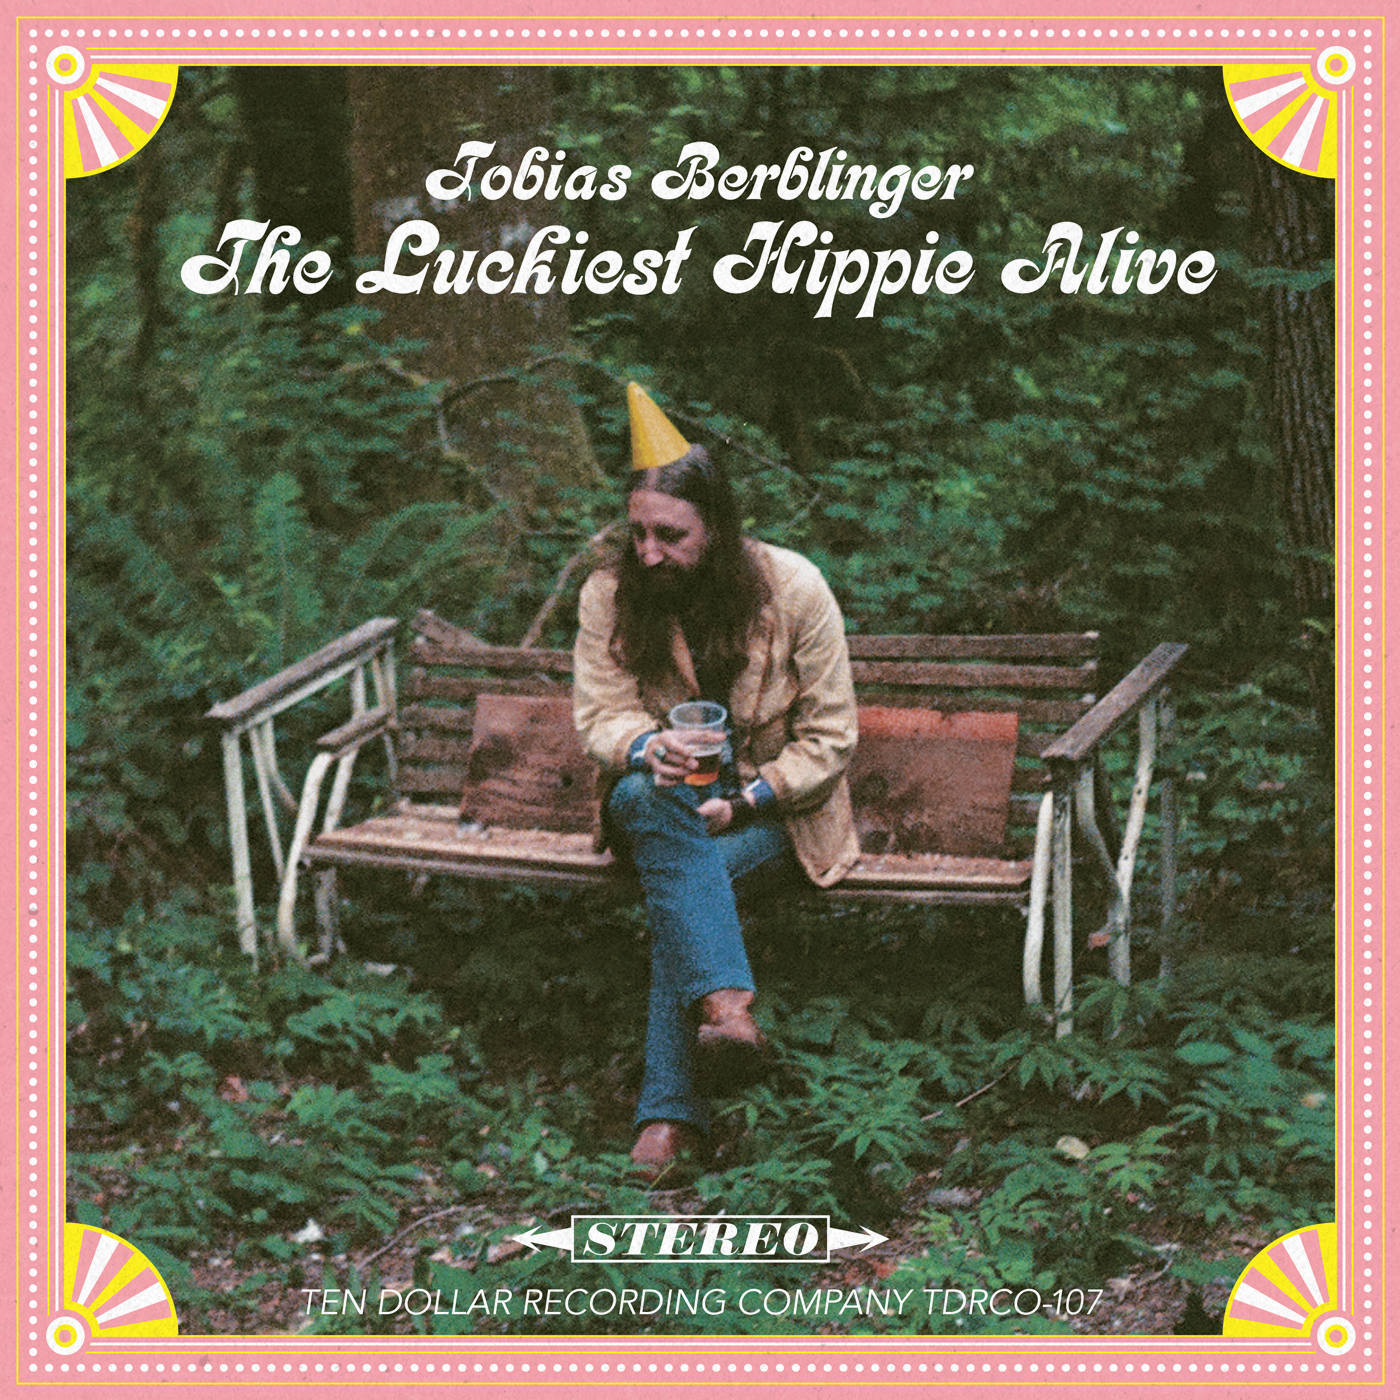 Tobias Berblinger - The Luckiest Hippie Alive